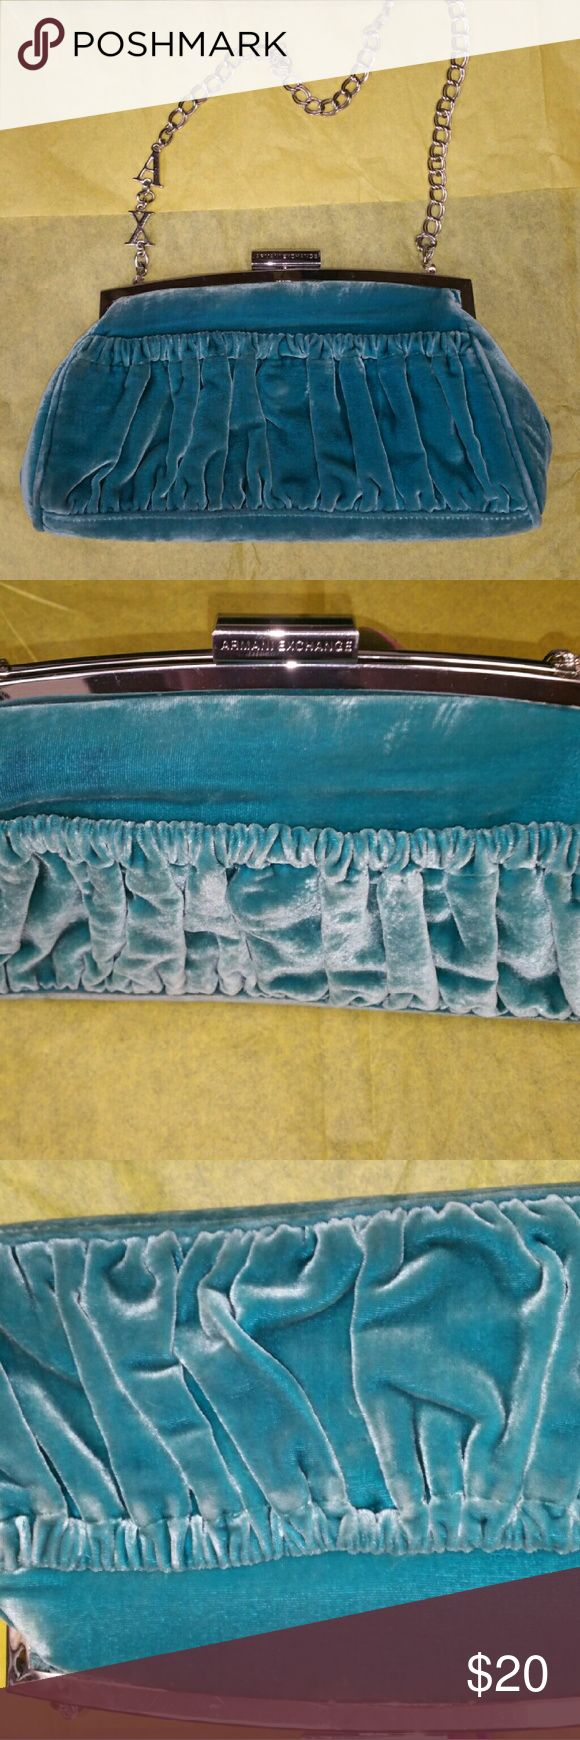 Armani Exchange purse Adorable velvet teal color mini purse good condition other then small imperfection see  4th pic. Not very noticable Armani Exchange Bags Mini Bags